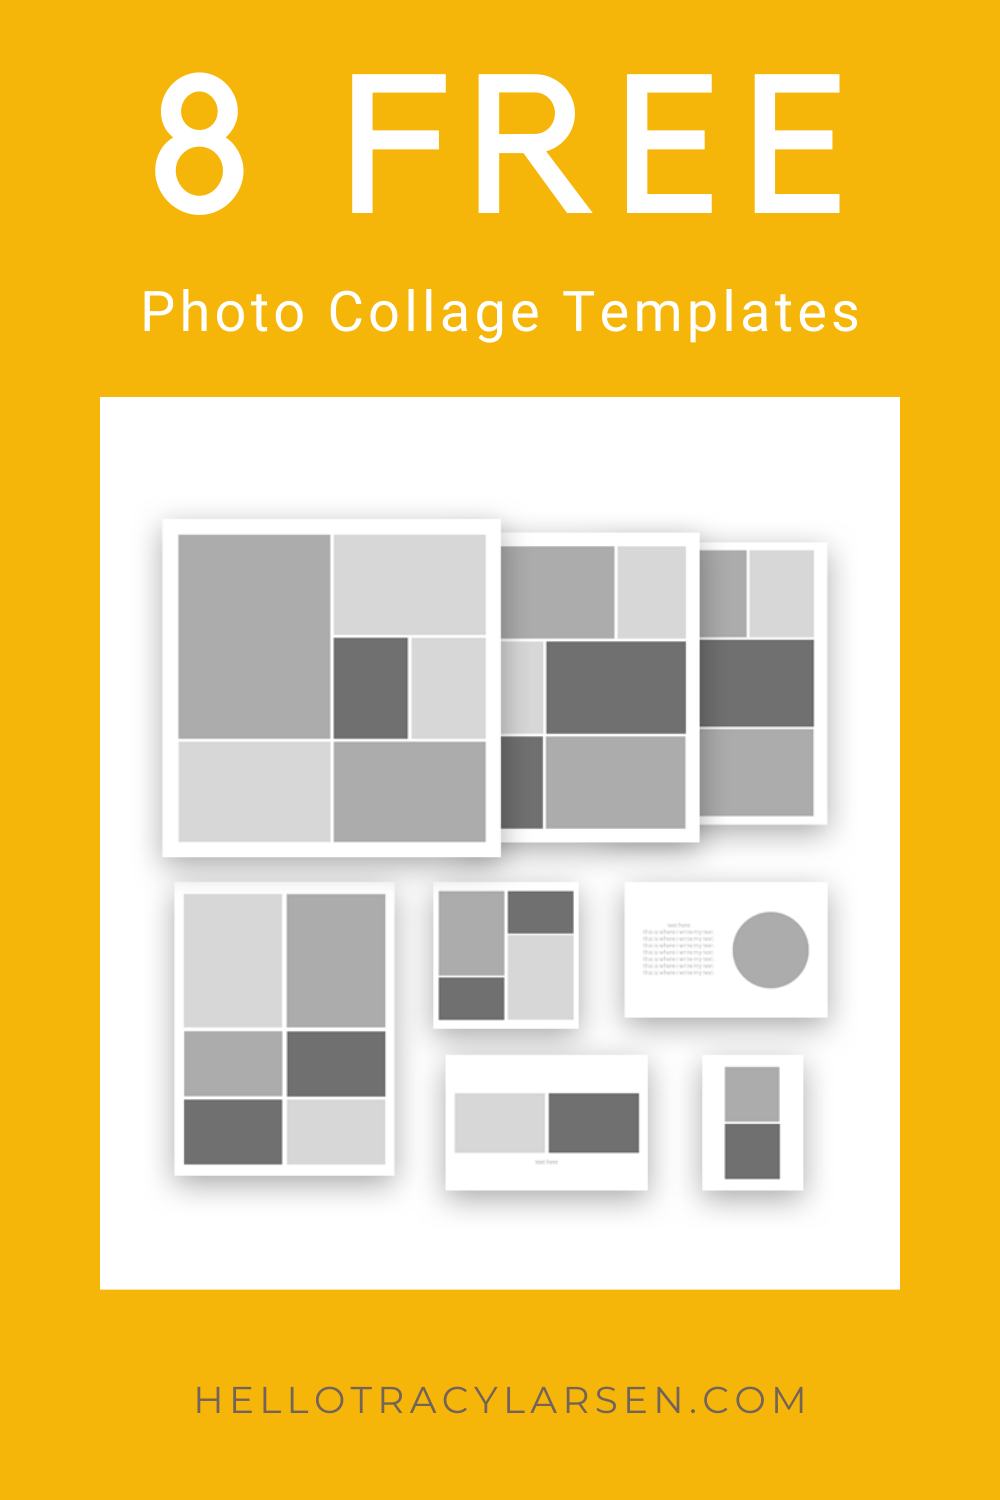 8 Free Photo Collage Templates Photo Collage Template Free Photo Collage Templates Collage Template